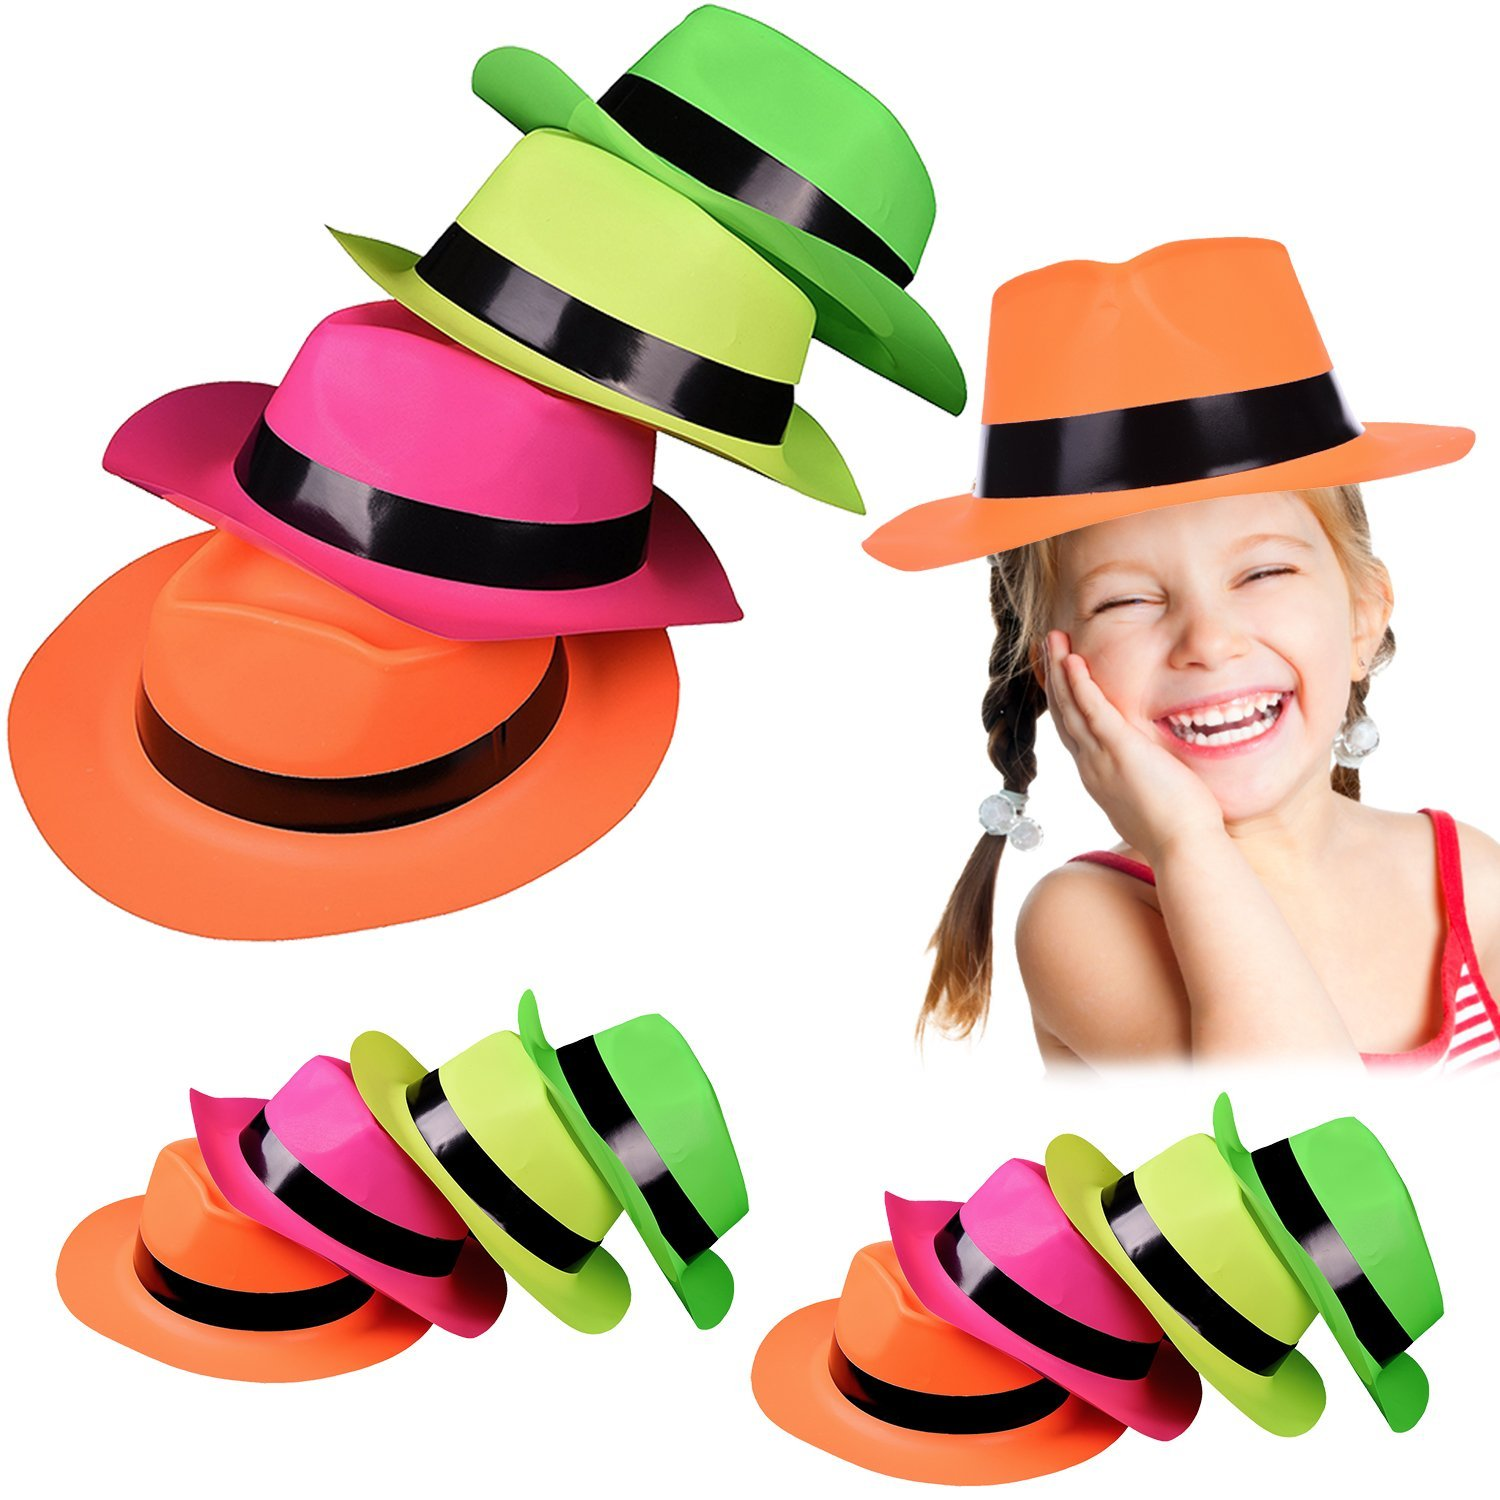 Original Gangster Hats - Cool Plastic Neon Gangster's Hats 24 Pack for Kids and Adults BBQ's | Birthdays | Concerts - Trendy Rave Hats  F-143